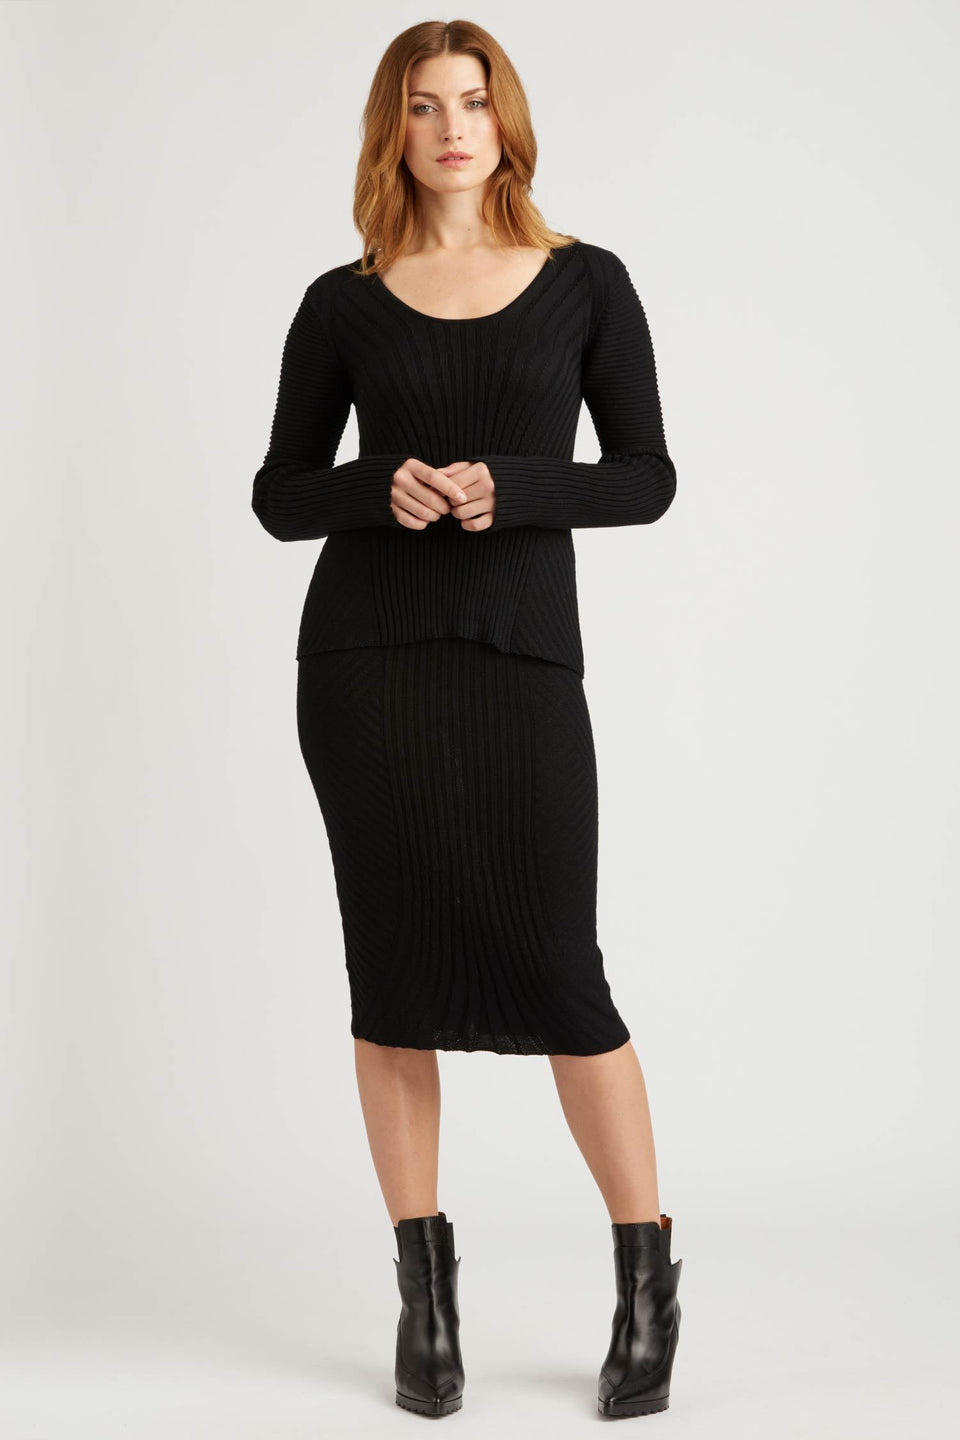 Alternating Rib Knit Skirt in Black